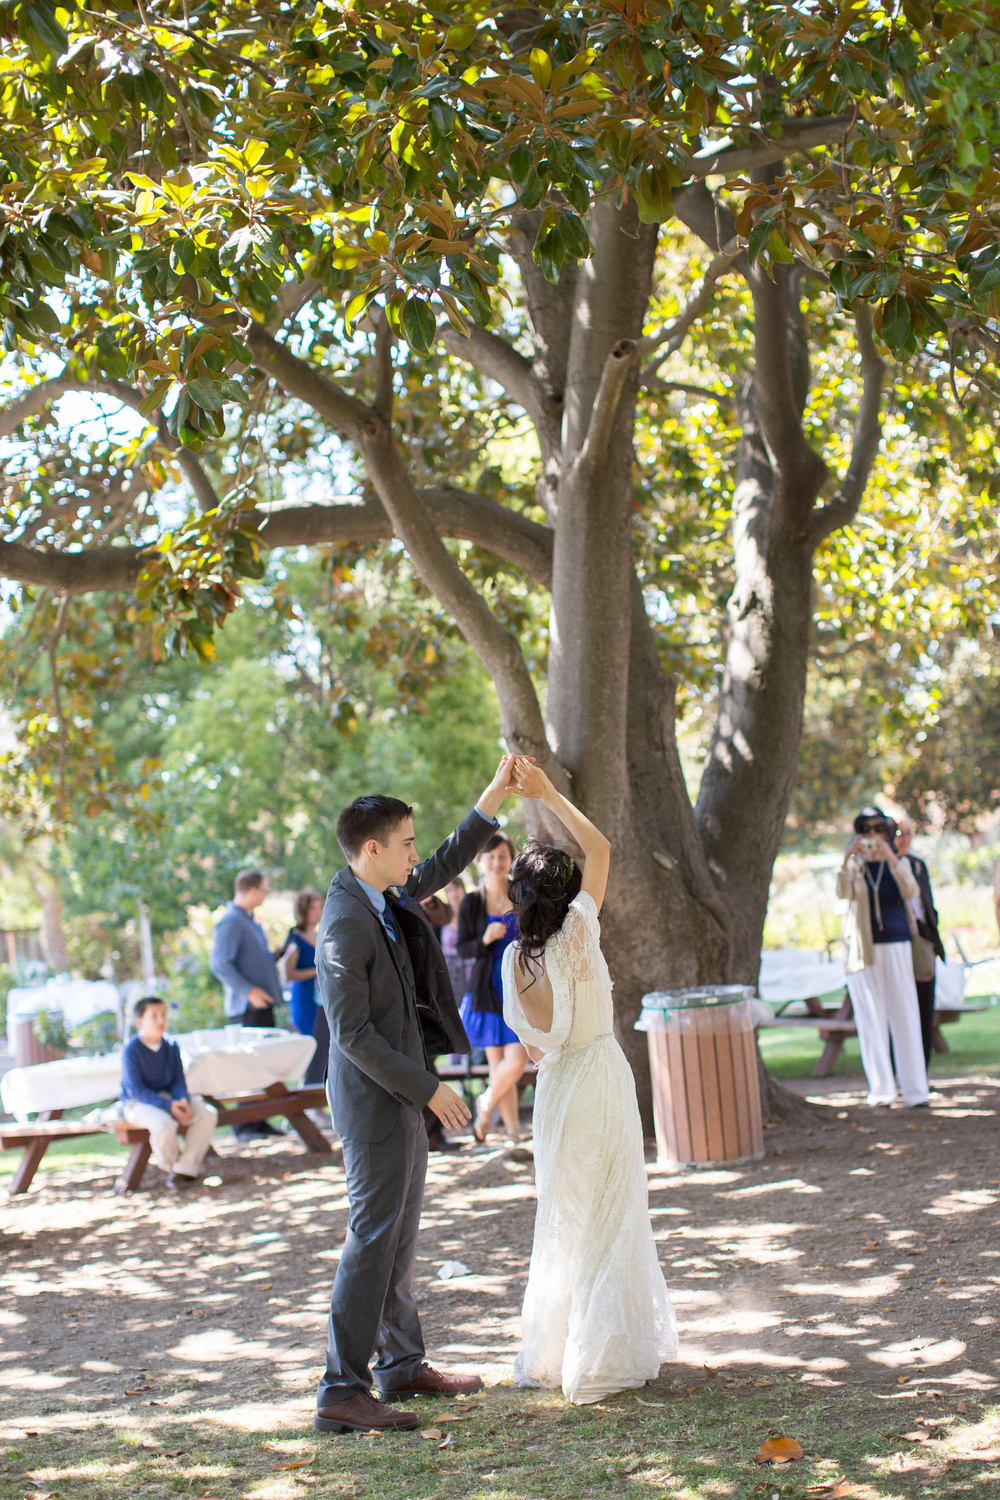 Chico California Wedding and Engagement Photography by TréCreative - Fremont Wedding Photography (244 of 261).jpg